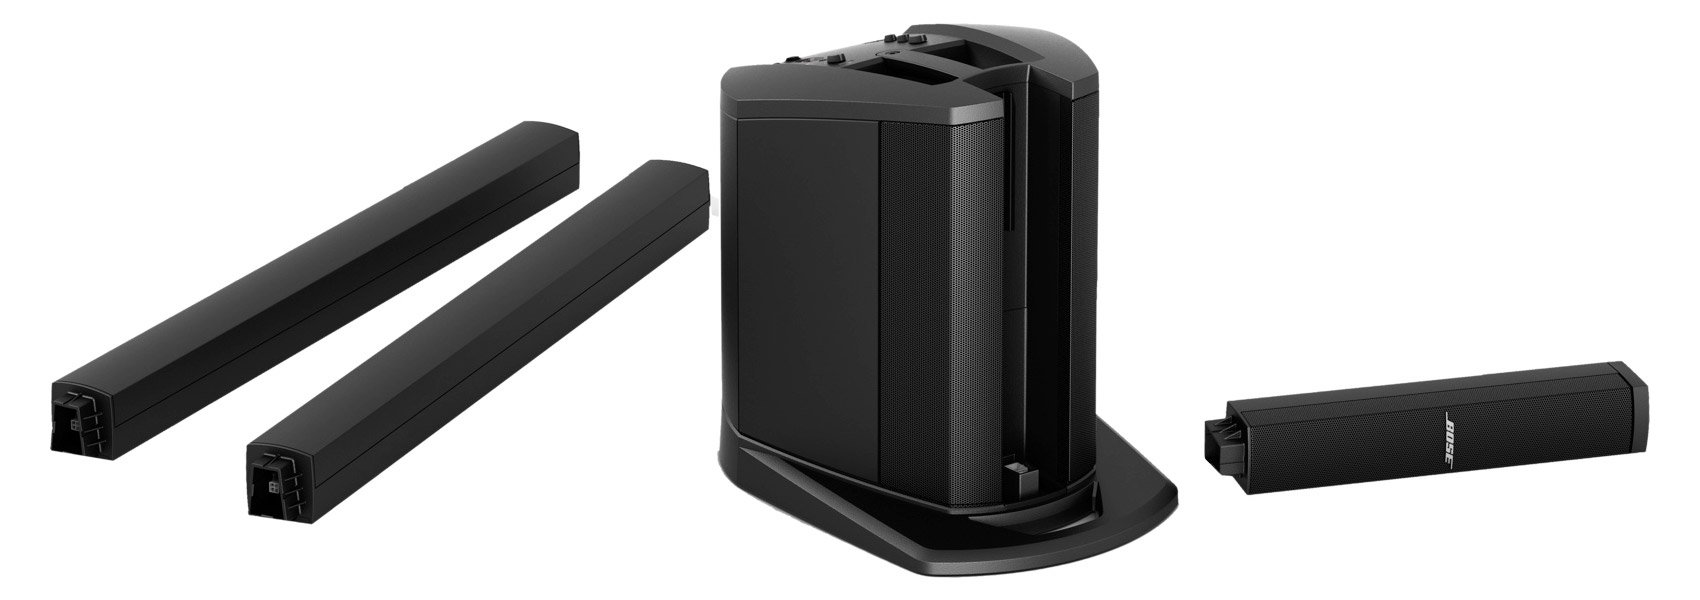 Bose L1 Compact w/ carry Case & SoundTouch Bluetooth & WiFi Adapter - Bundle by Bose (Image #5)